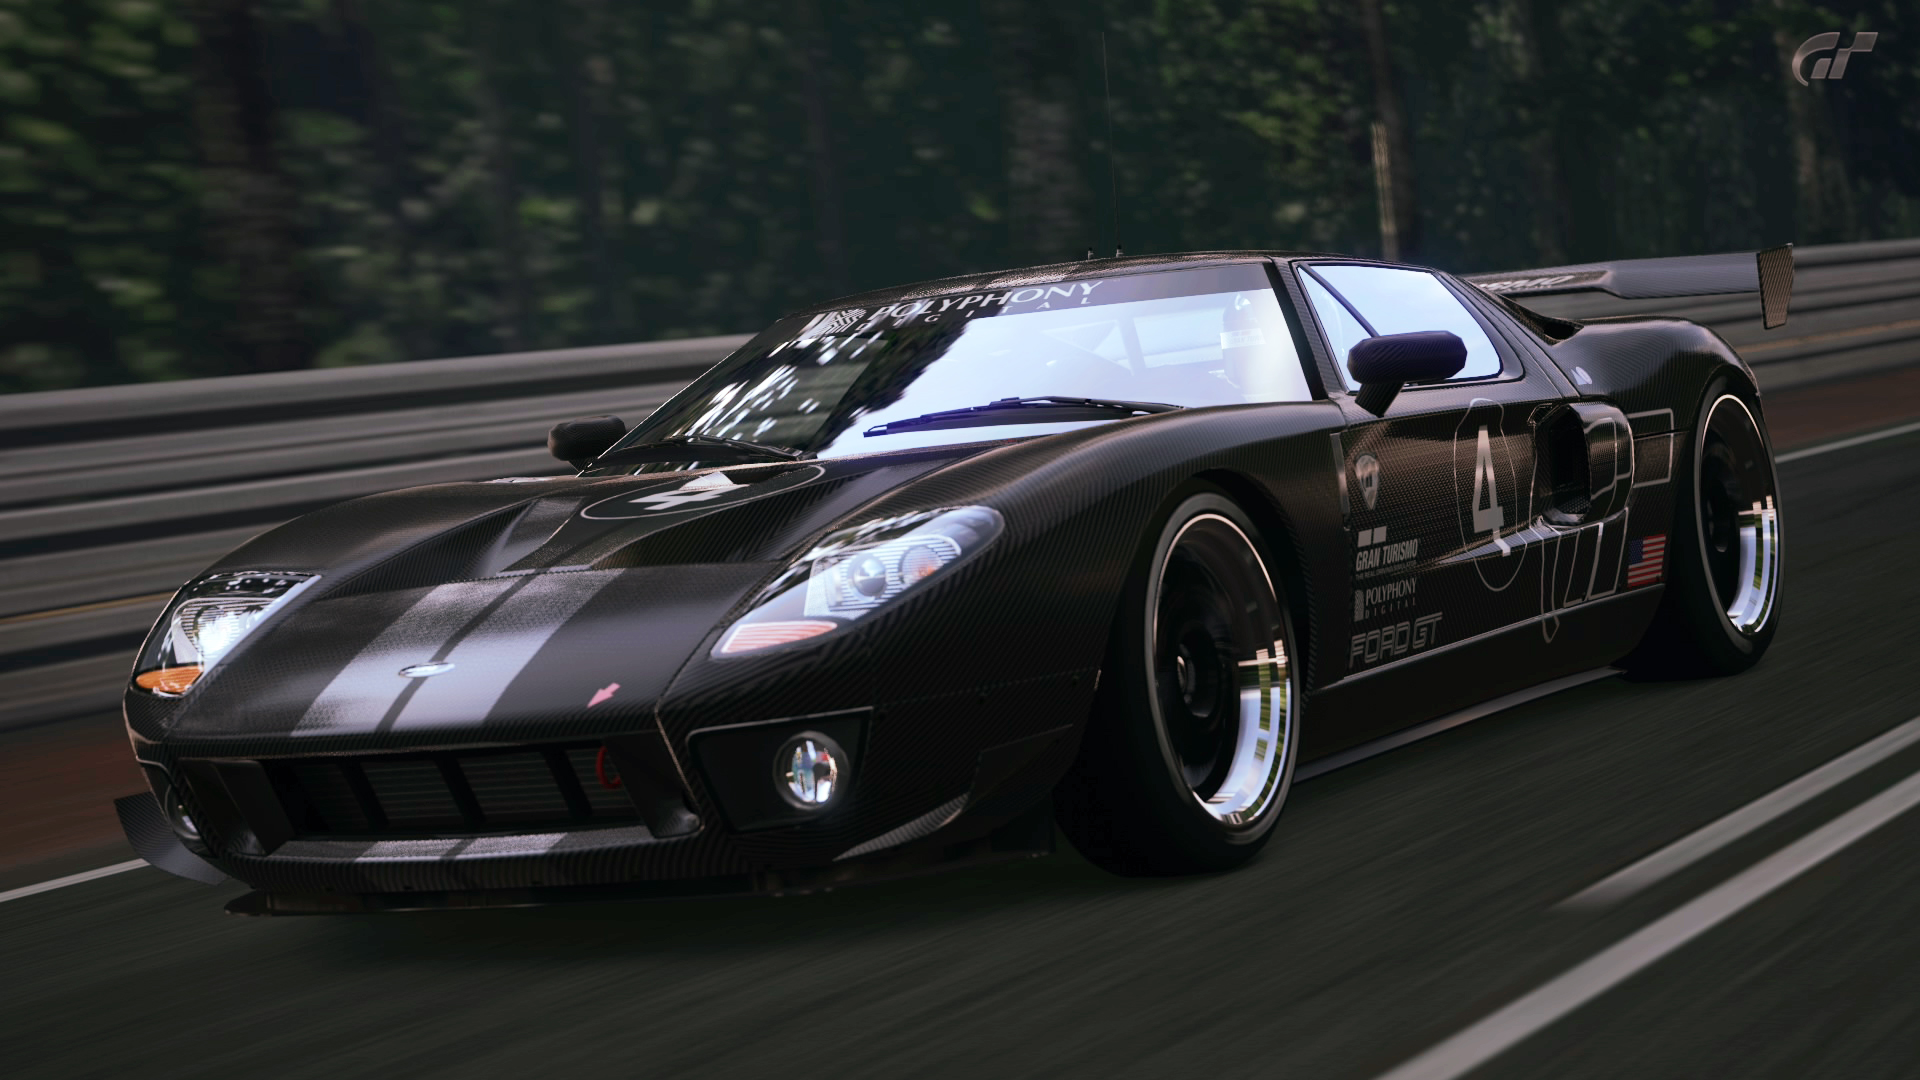 Turismo Car: Who Is Your Favorite Car In Gaming?